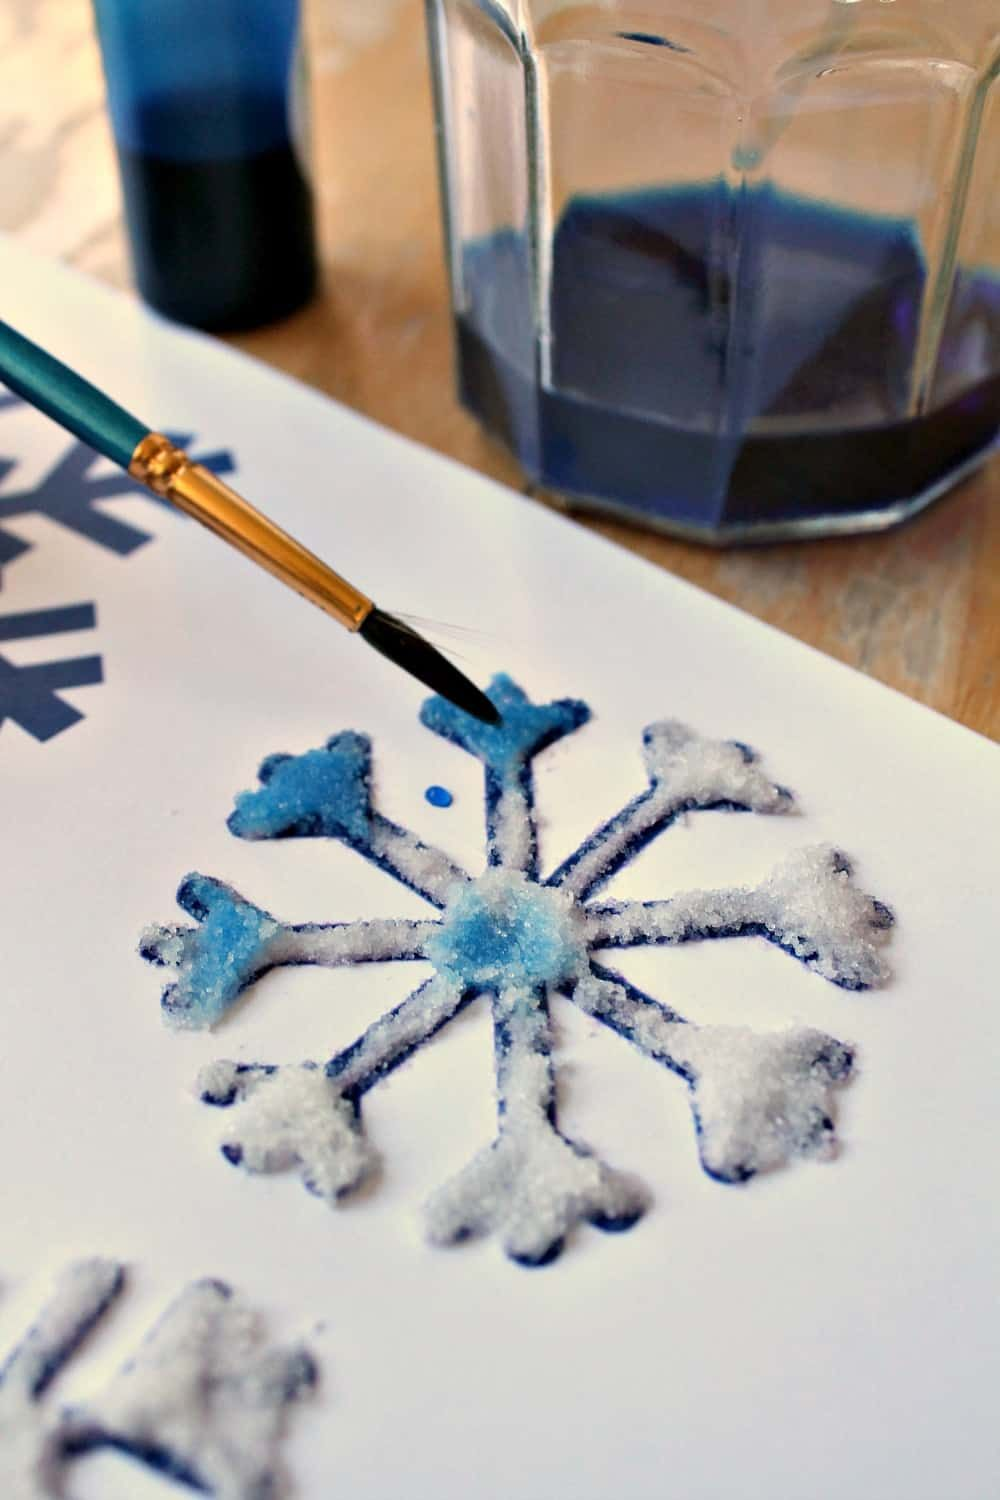 Salt Glue And Watercolor Painting To Make Snowflake Art